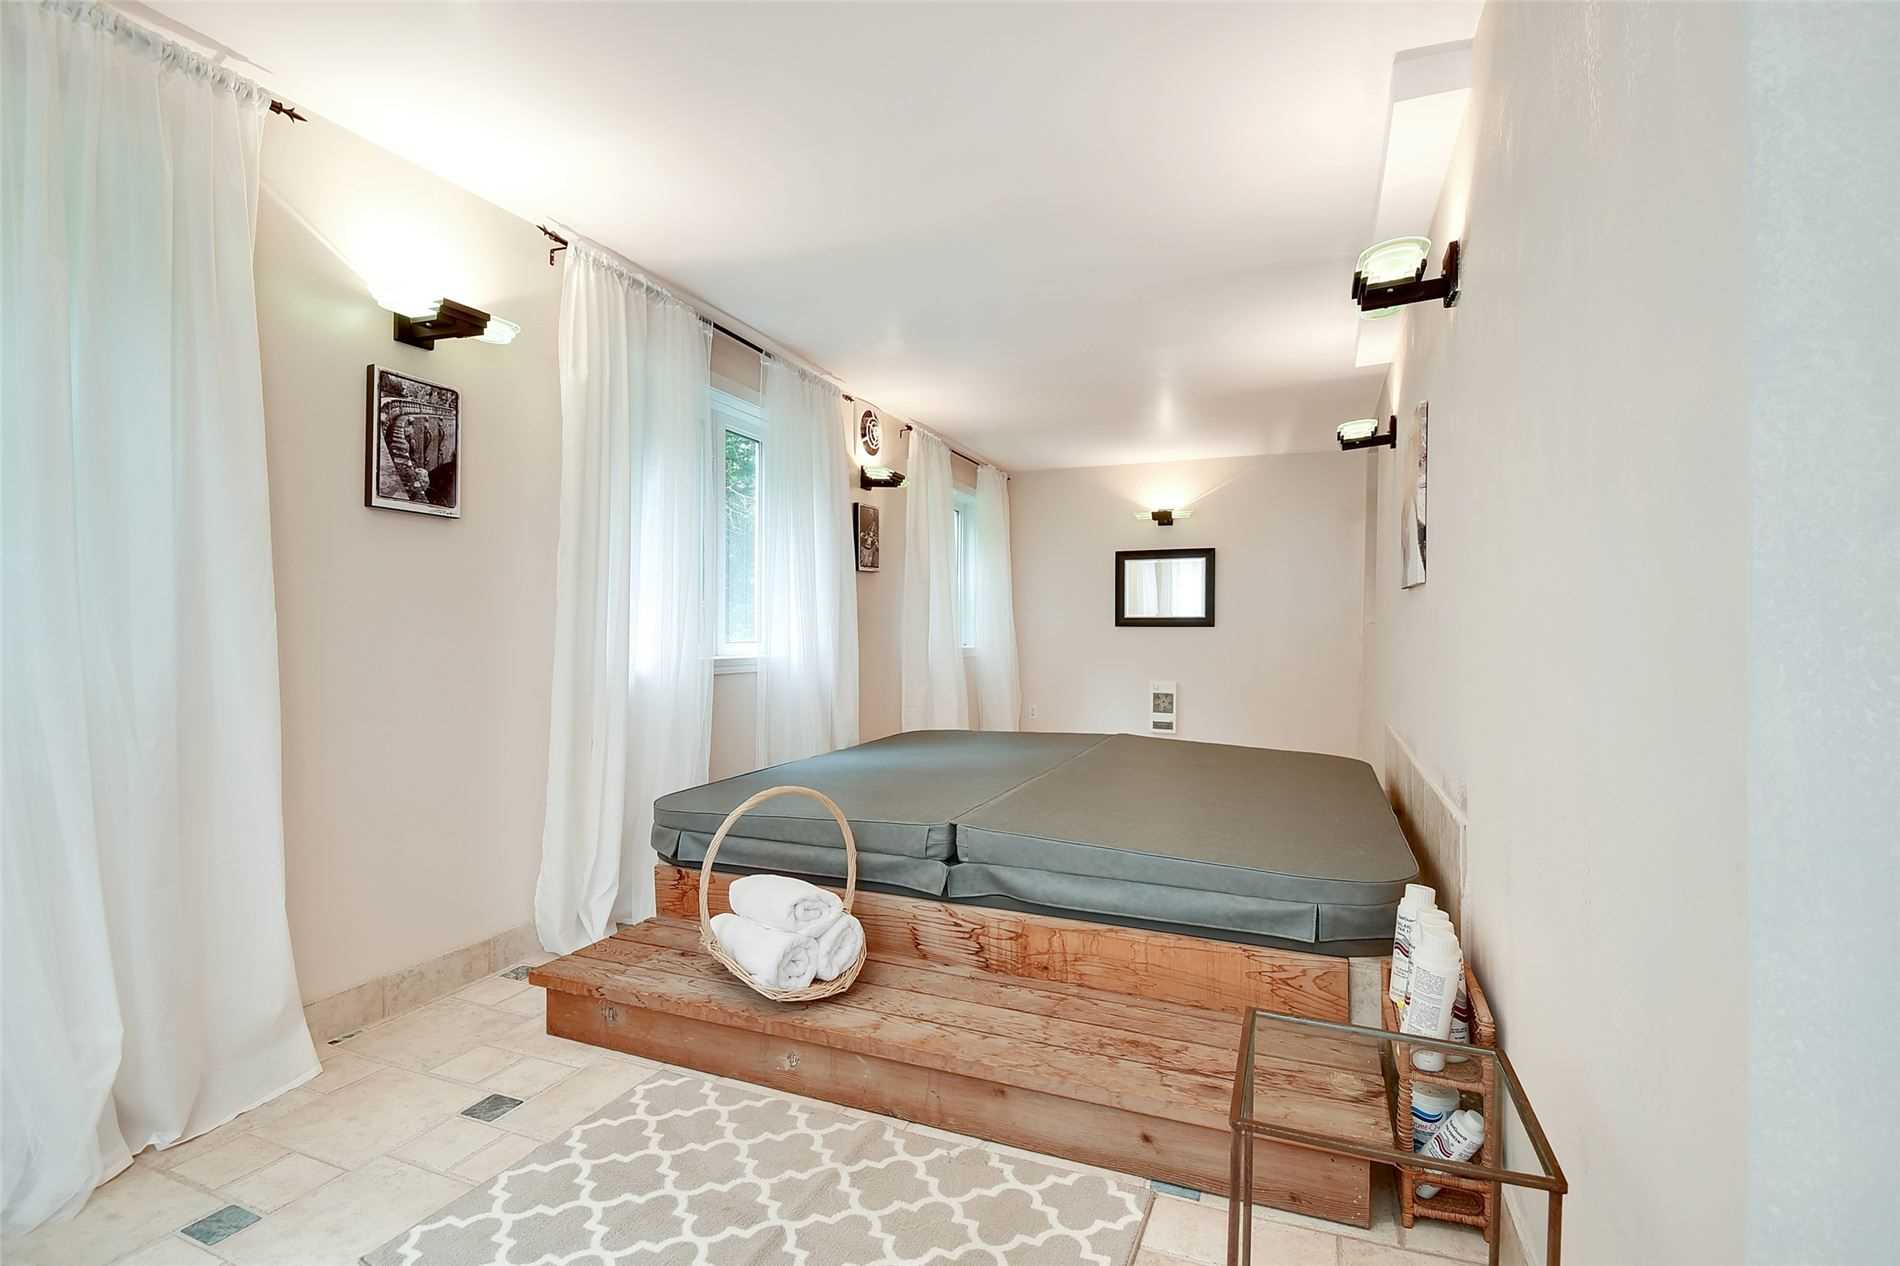 630 Woodland Acres Cres, Vaughan, Ontario L6A1G2, ,7 BathroomsBathrooms,Land,For Sale,Woodland Acres,N4775262